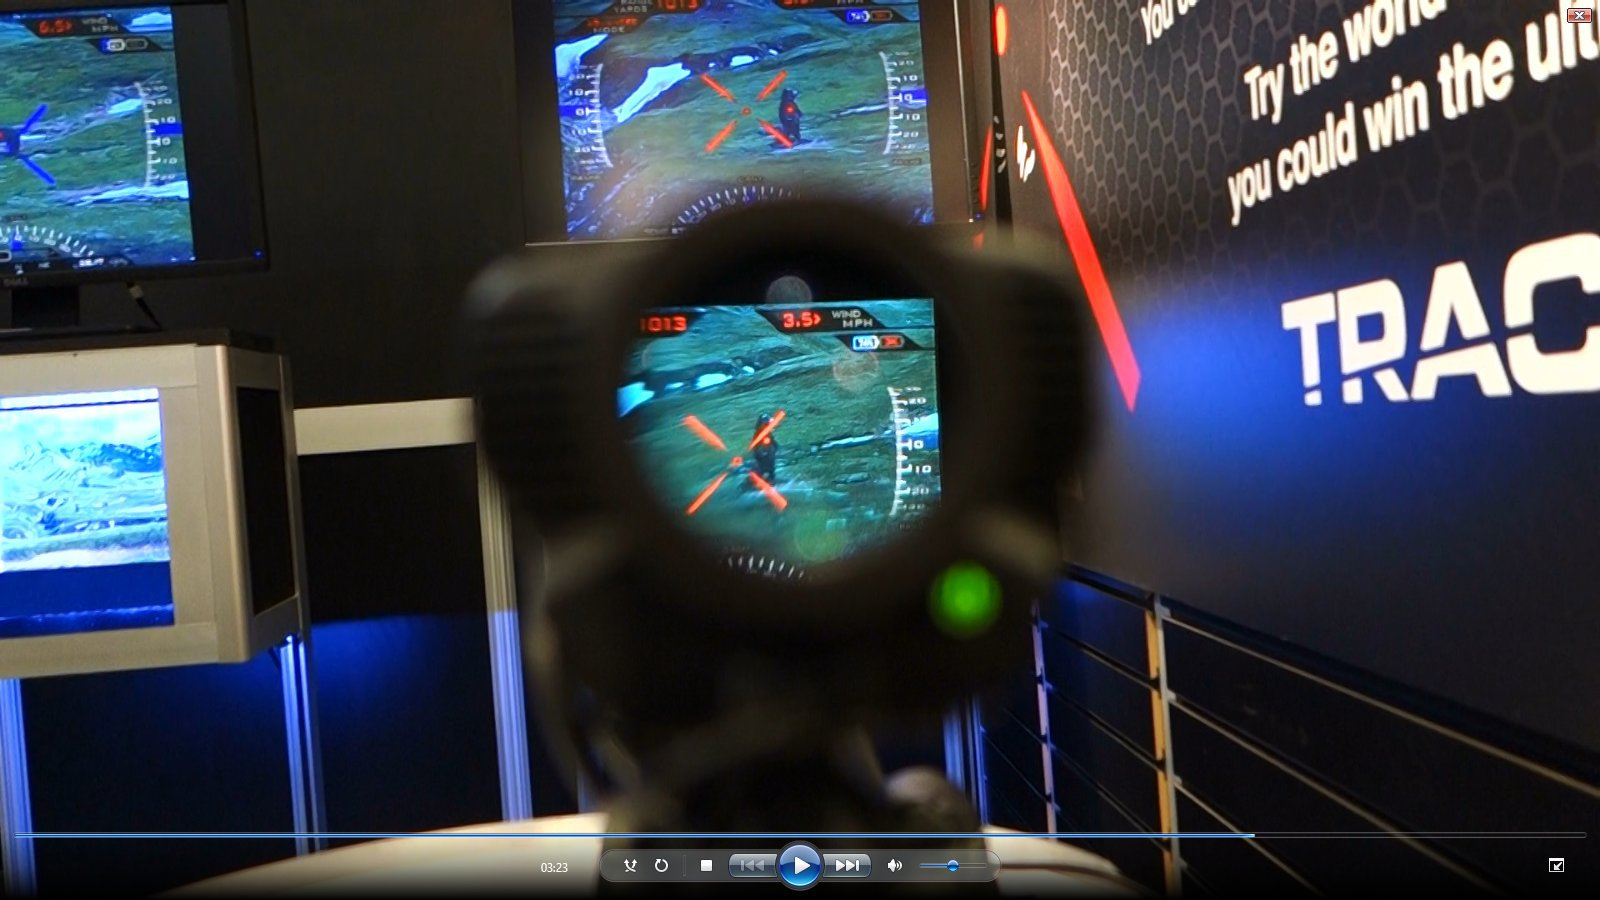 TrackingPoint XactSystem Precision Guided Firearm (PGF) Sniper Rifle Package with Surgeon Rifle and Integrated Networked Tracking Scope/Smart Scope Explained in Detail (Video!)